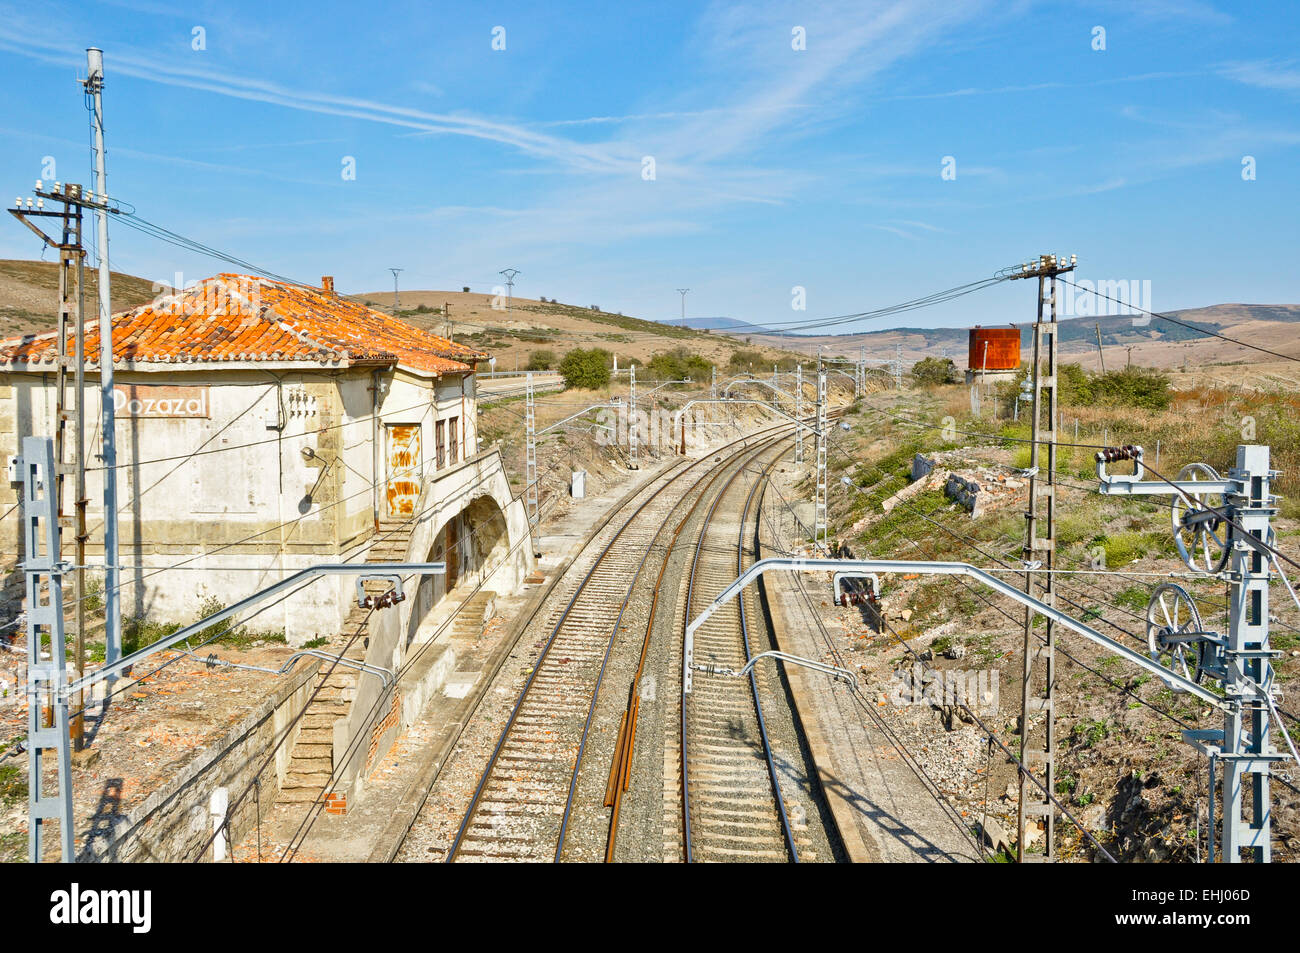 Old Railroad Station in Spain - Stock Image